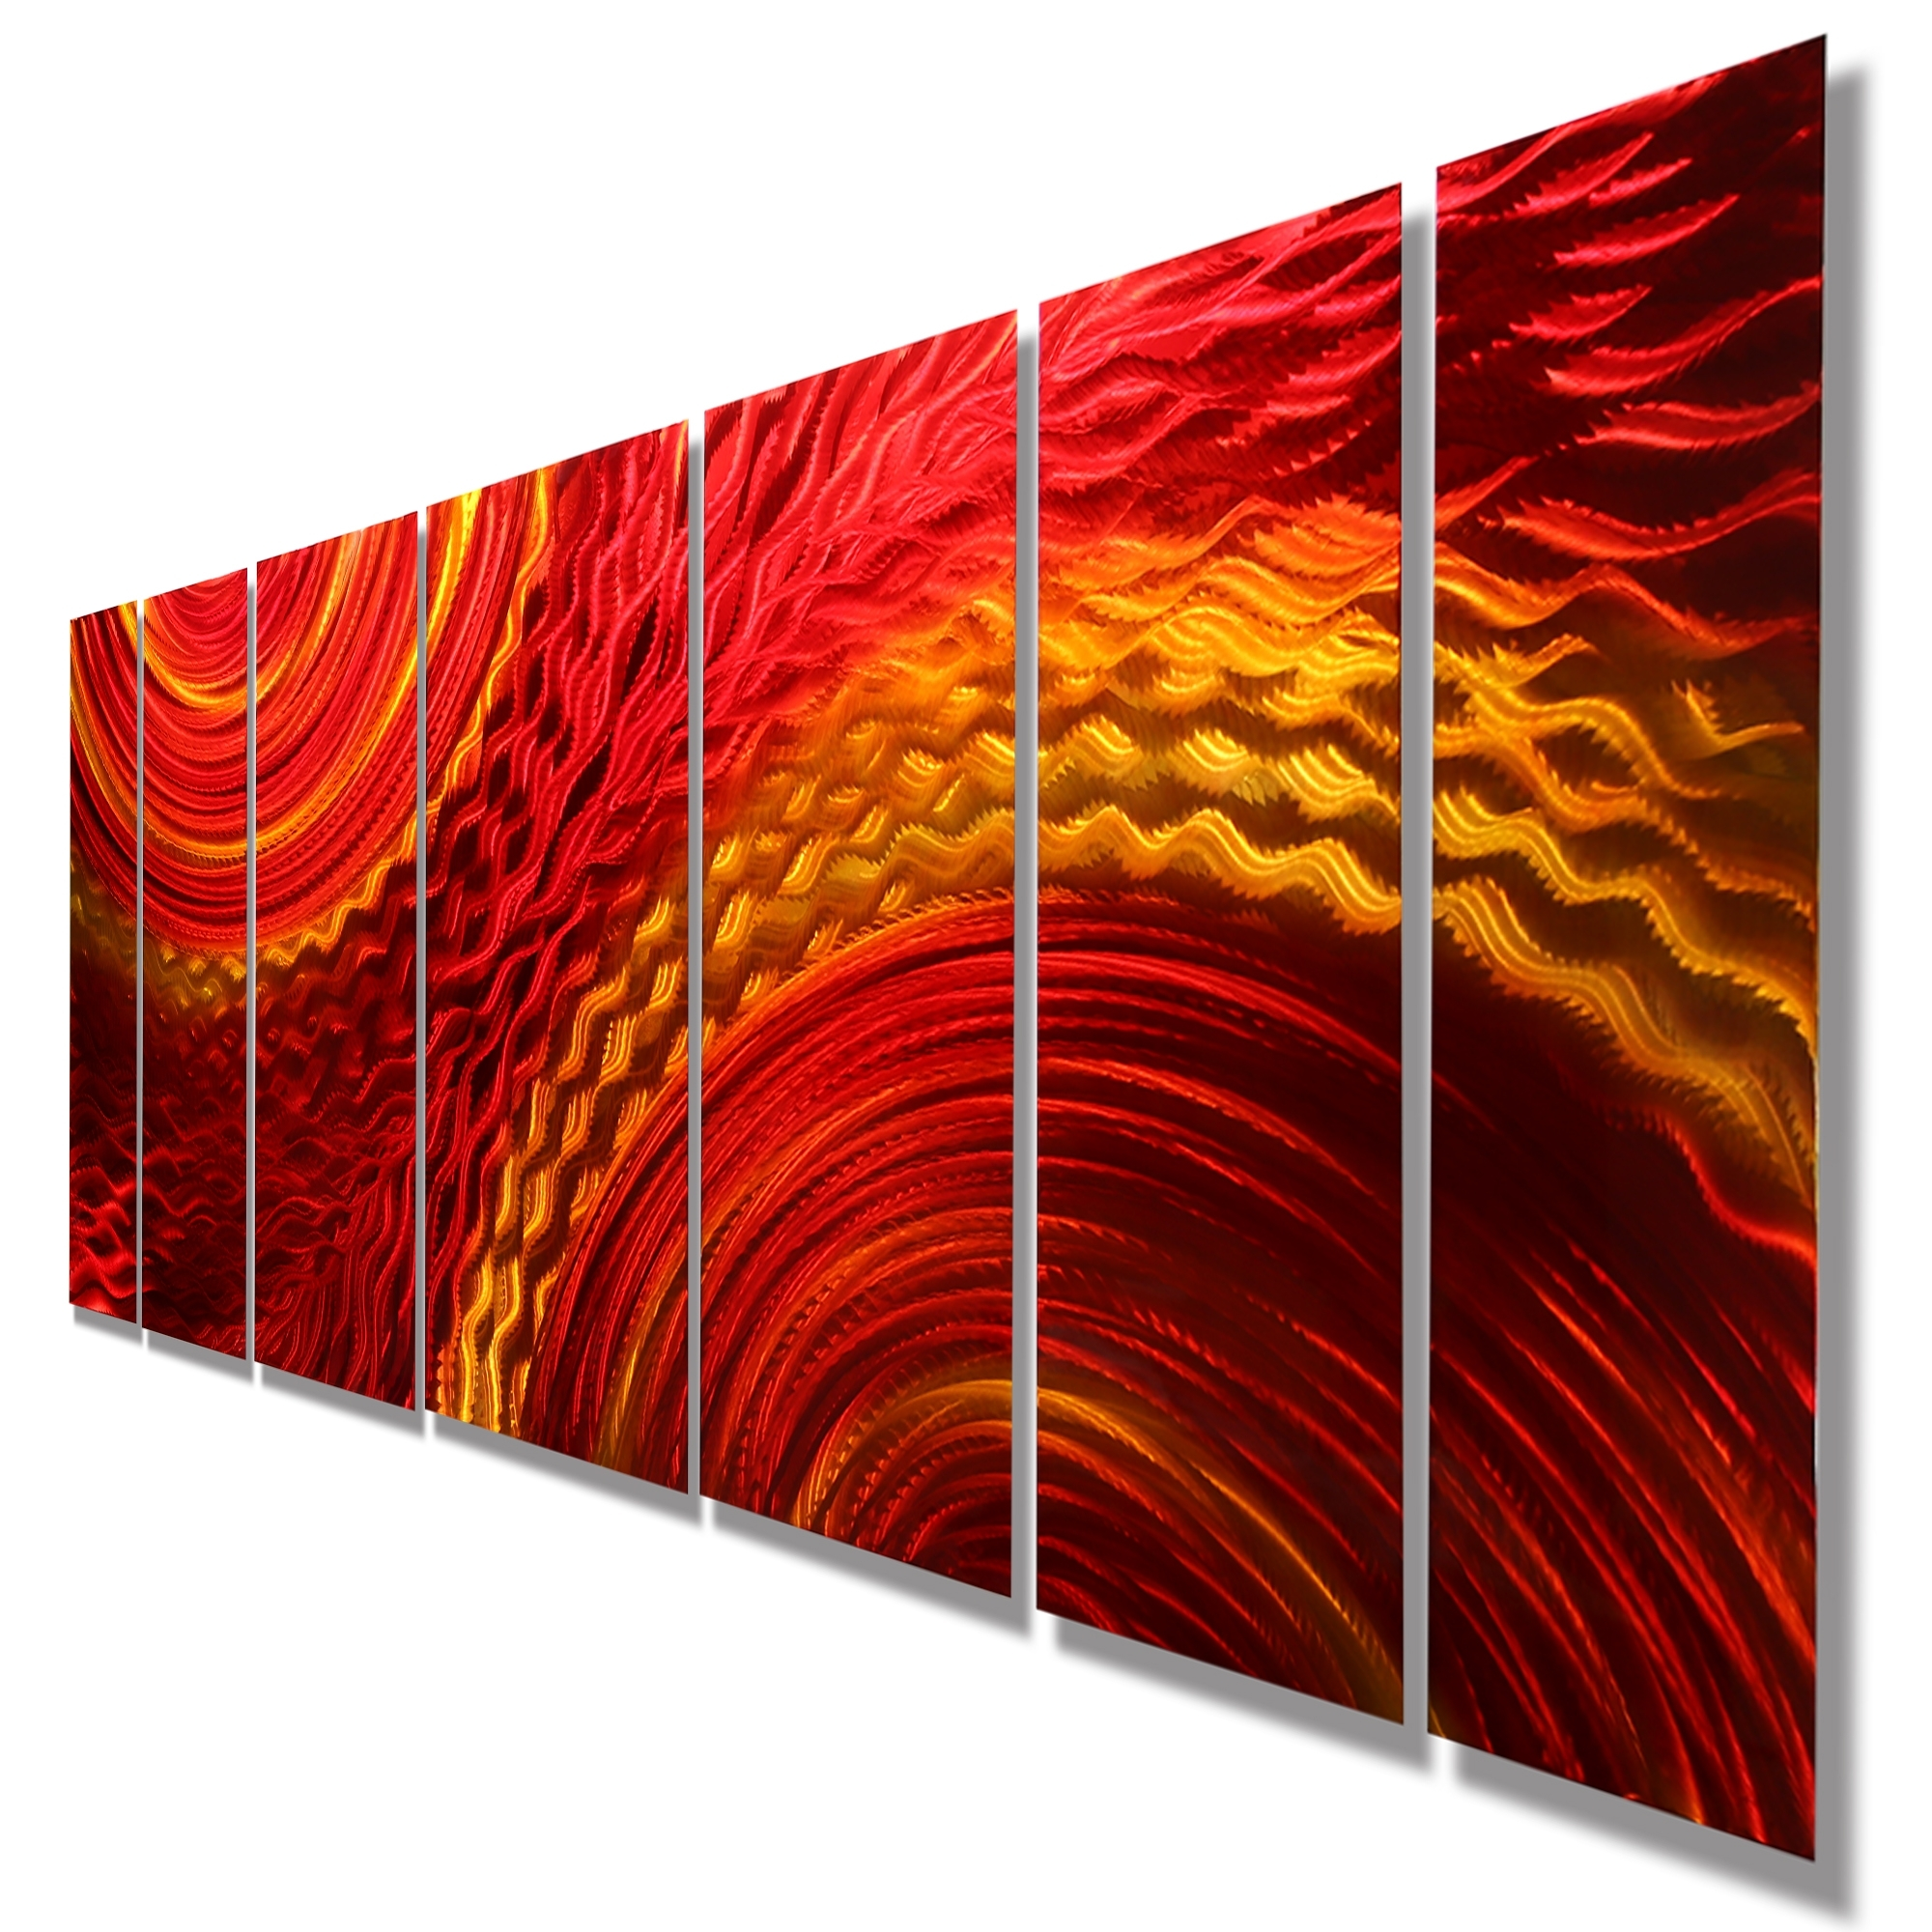 Home Decor: Alluring Abstract Metal Wall Art With Harvest Moods Xl Within Most Recent Abstract Wall Art Australia (View 6 of 20)